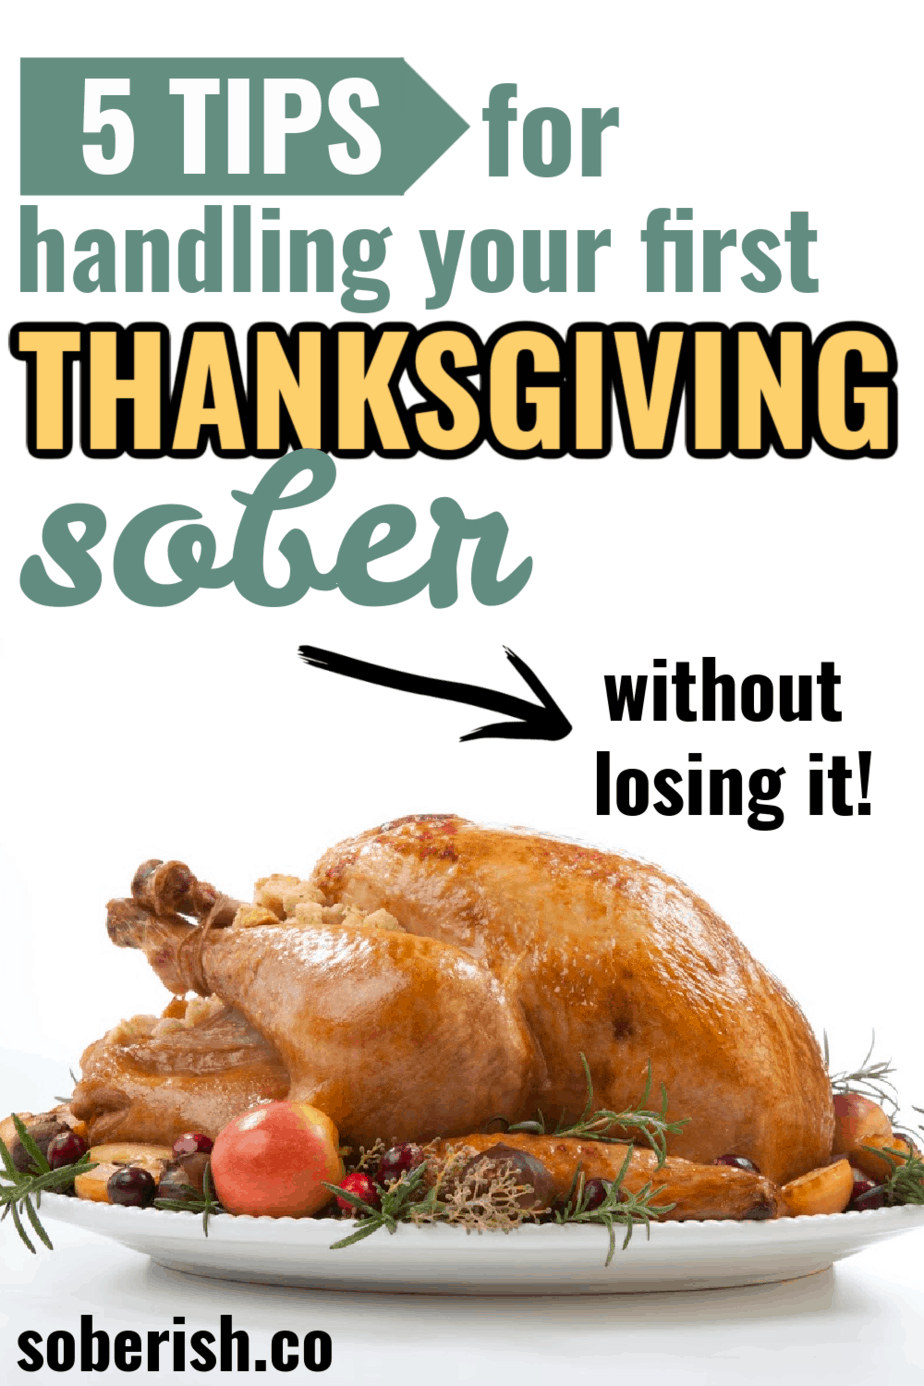 Turkey with the title how to handle your first thanksgiving sober